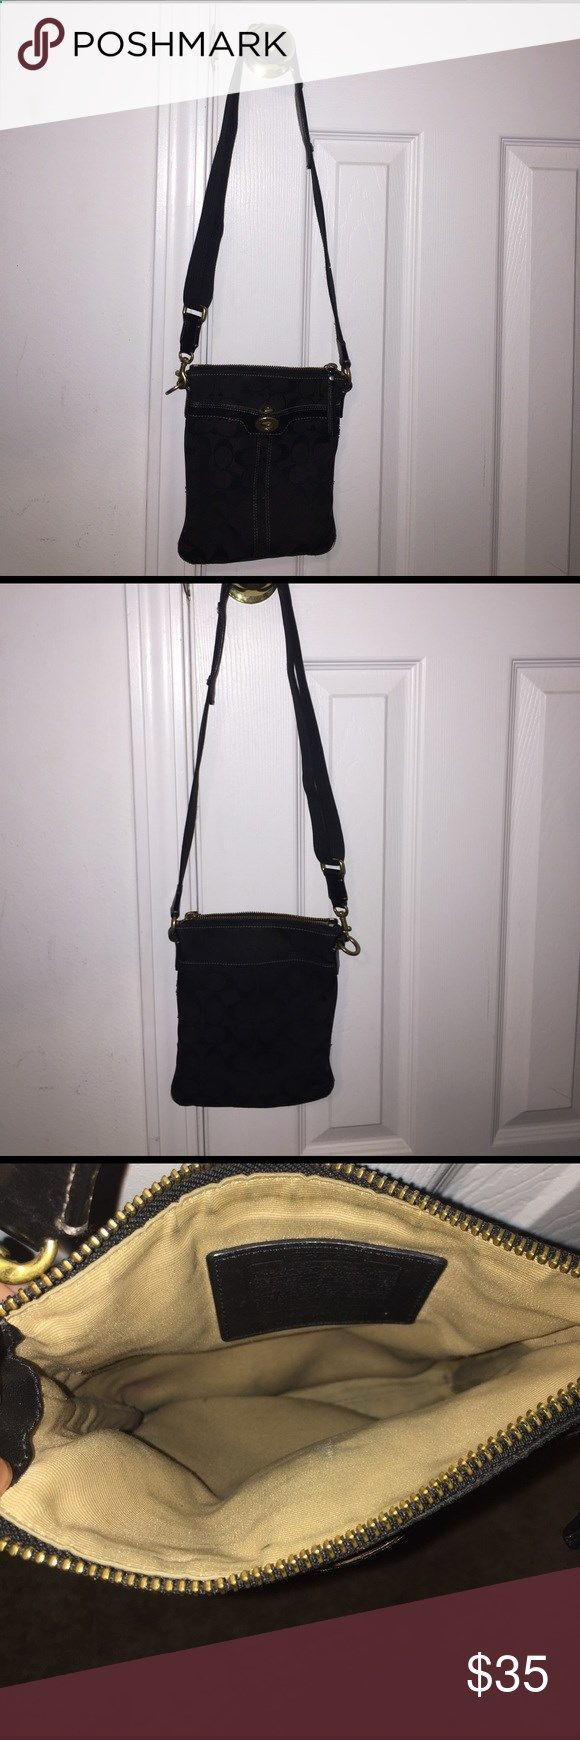 Black coach purse Used, the outside pockets have pen stains. Black coach purse. Coach Bags Crossbody Bags